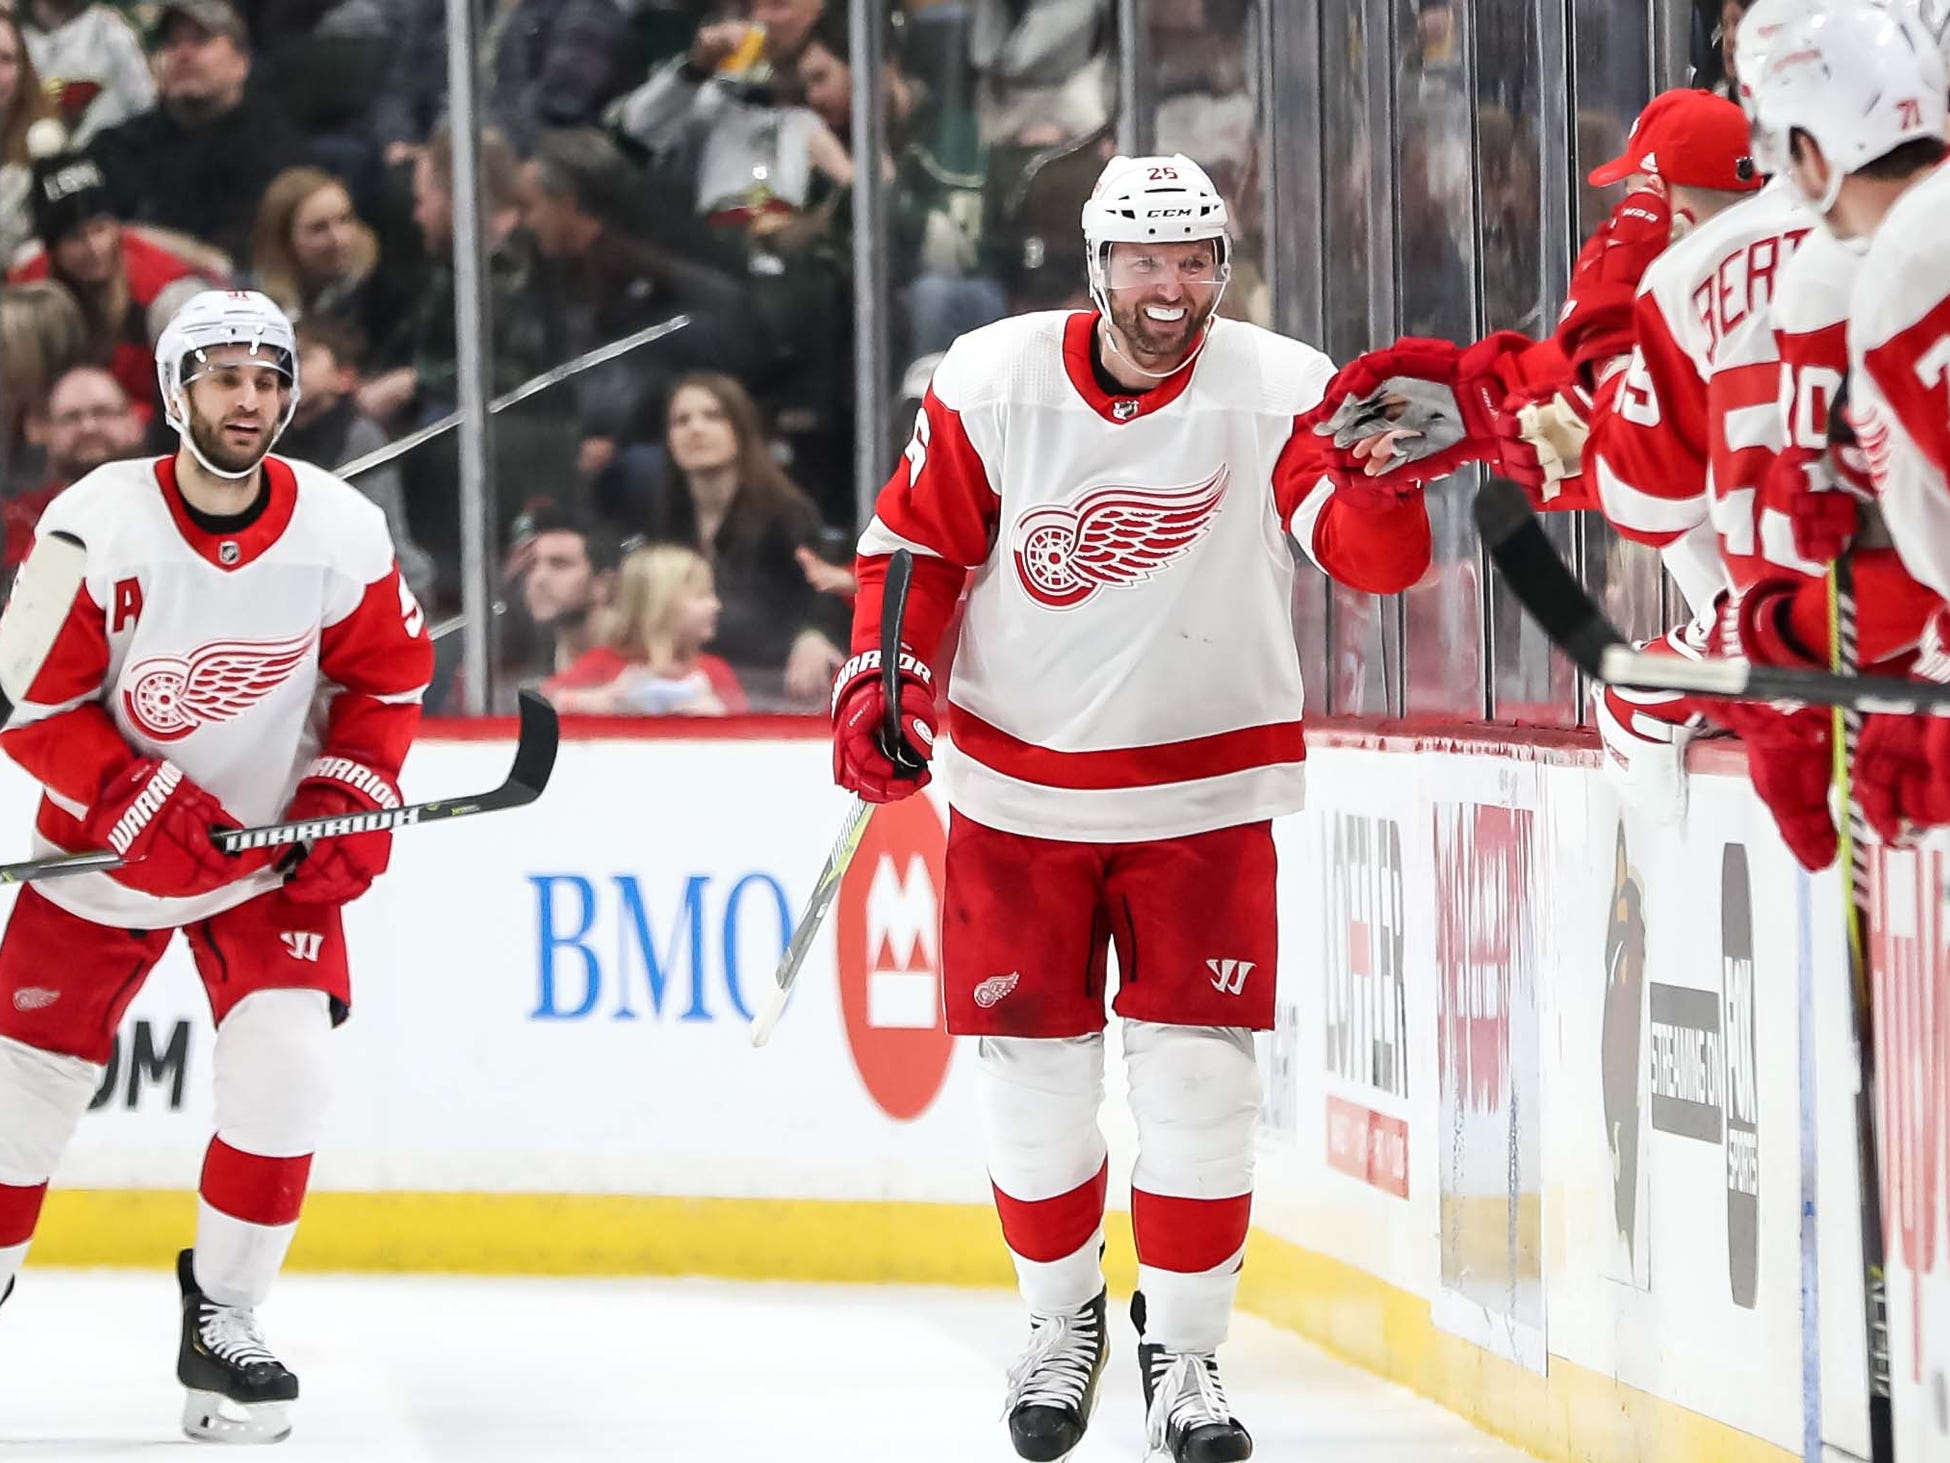 Detroit Red Wings forward Thomas Vanek celebrates his goal with teammates during the second period against the Minnesota Wild, Jan. 12, 2019 in Saint Paul, Minn.